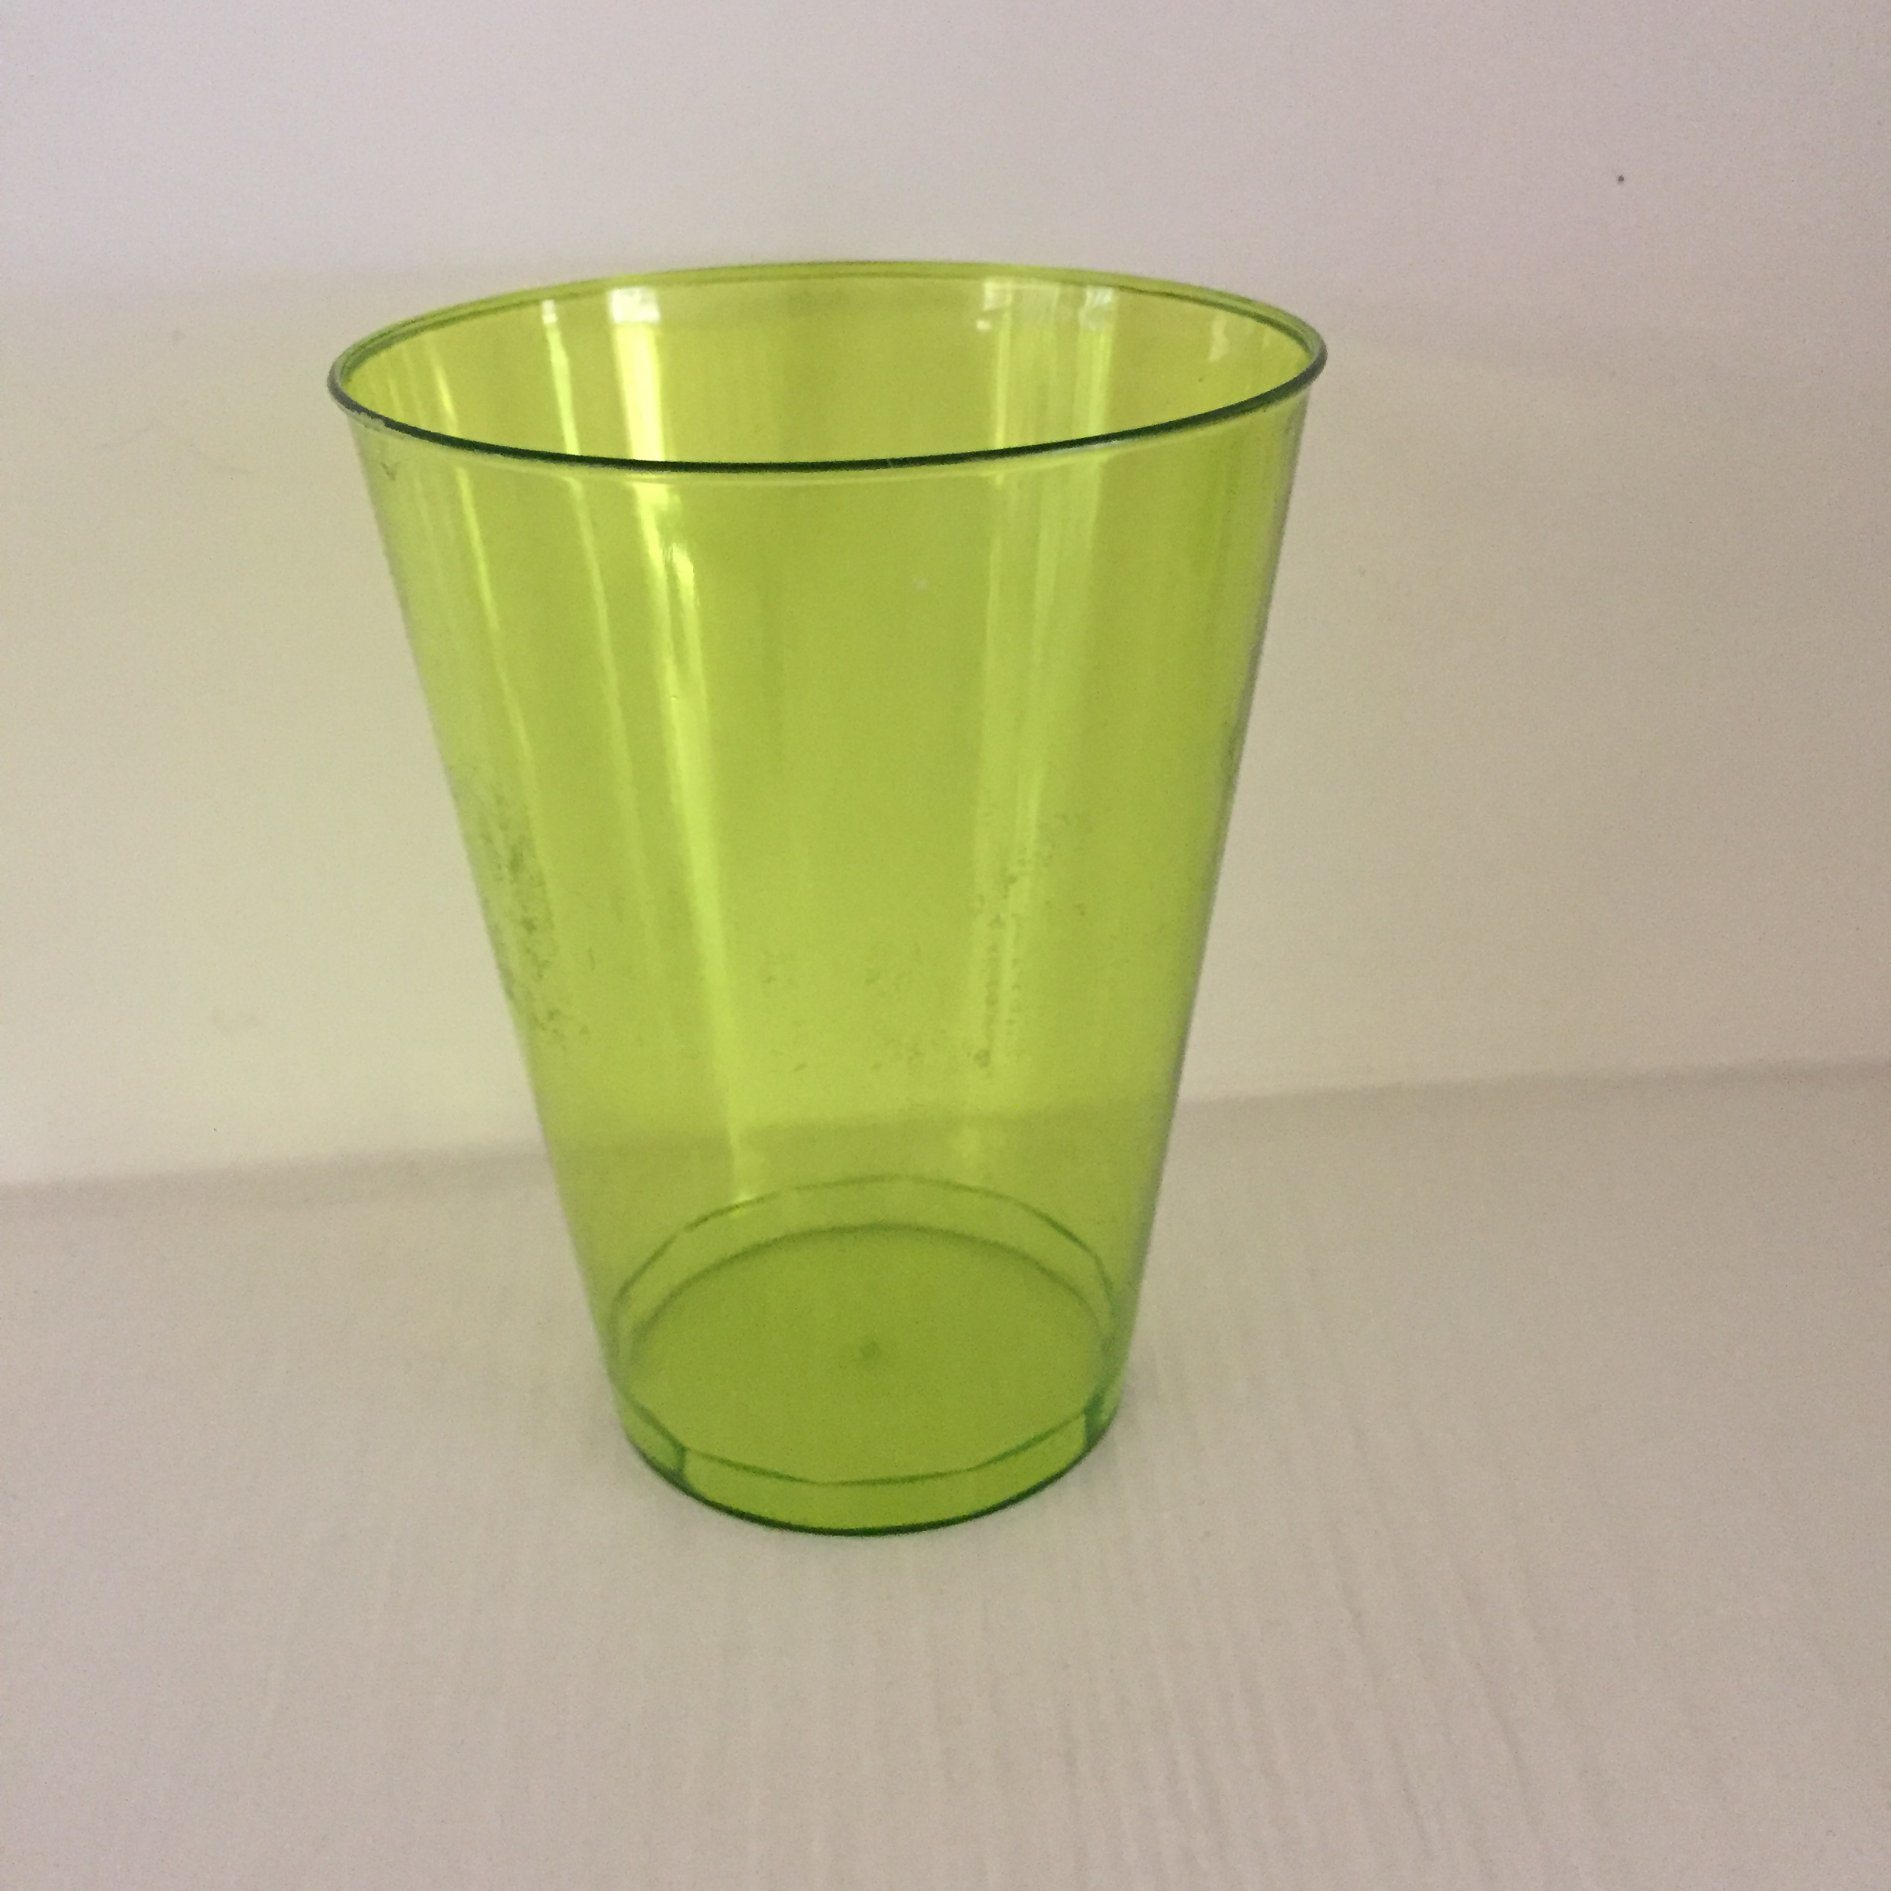 Plastic Cup, Glass, Mug, Tableware, PS, Transparent, Disposable, Colorful, Injection Cup